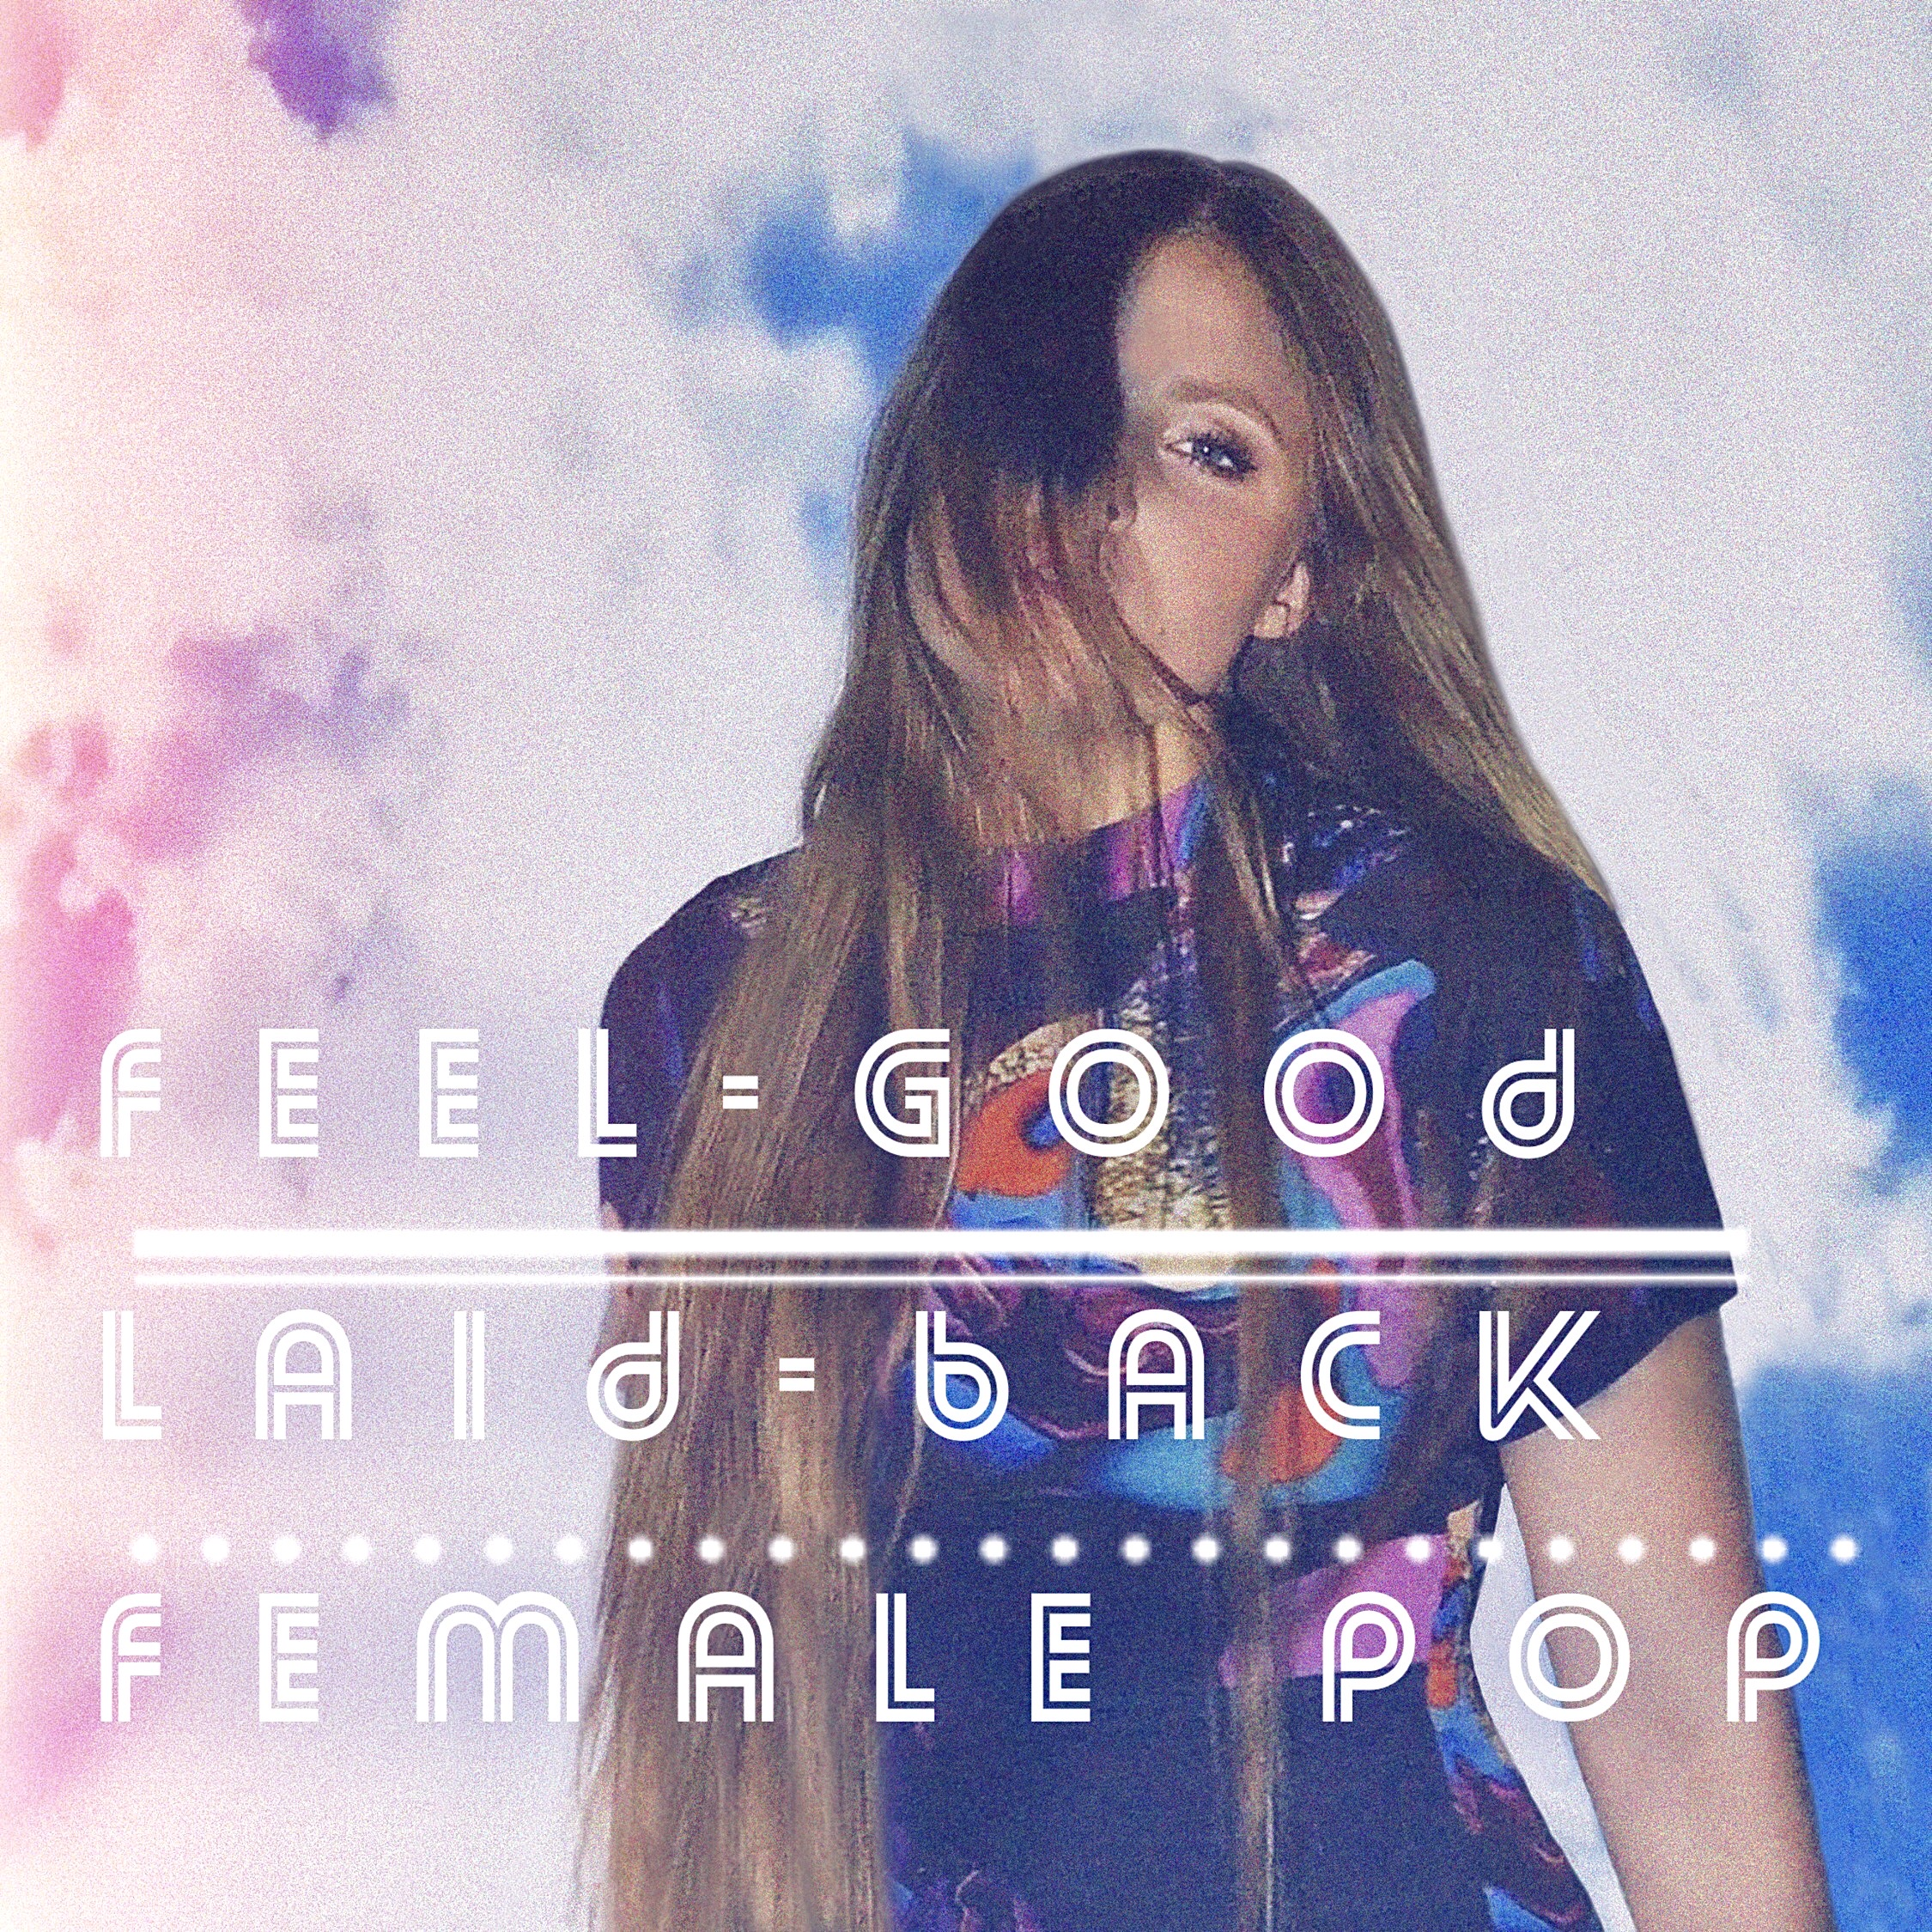 Feel-good & laid-back female pop